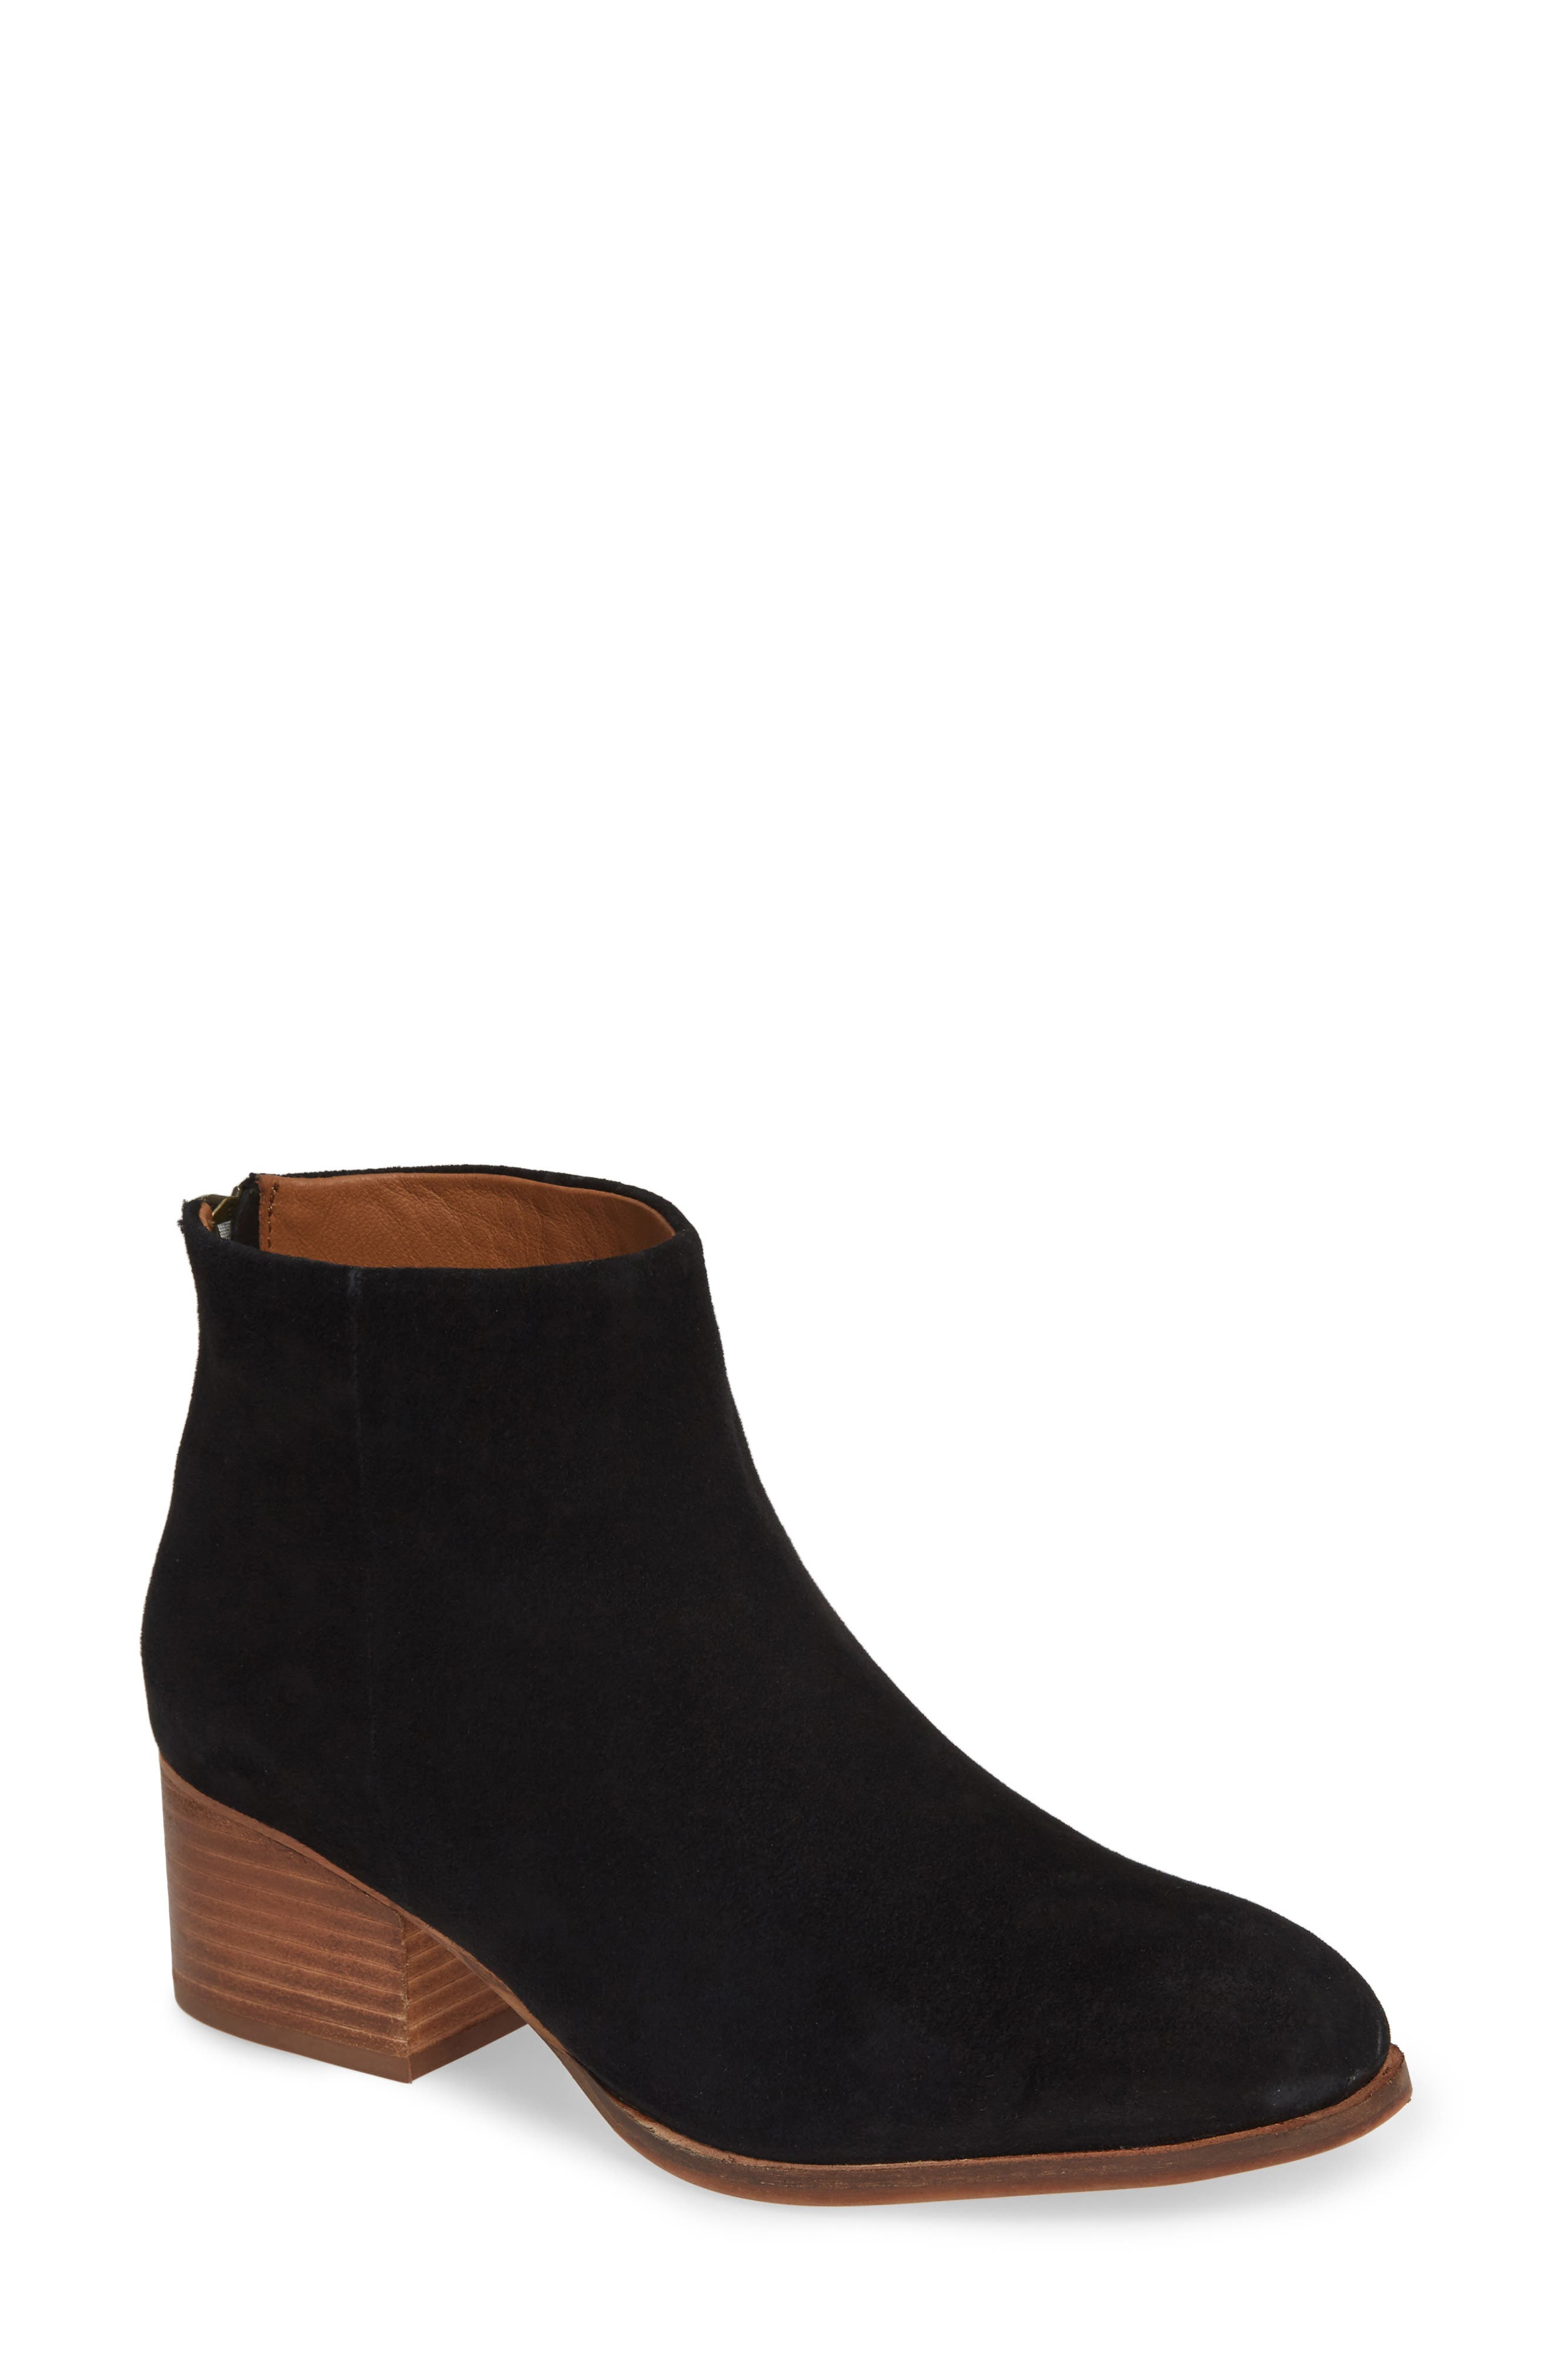 Seychelles Floodplain Block Heel Bootie- Black